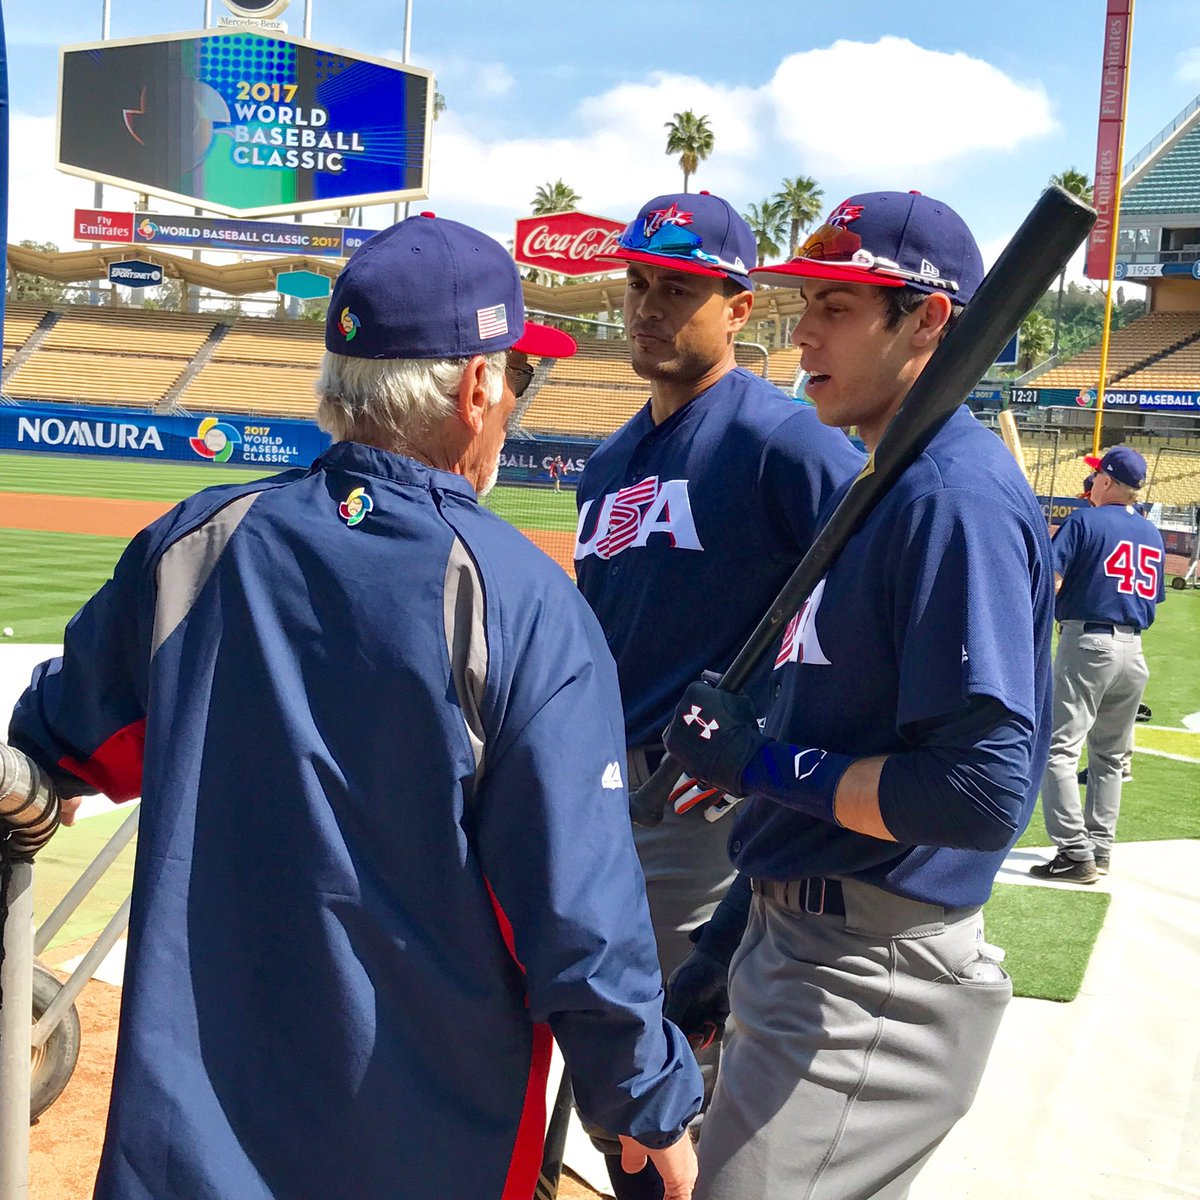 Team USA's Christian Yelich and Giancarlo Stanton wearing Oakley and Under Armour glasses preparing for their game vs Japan